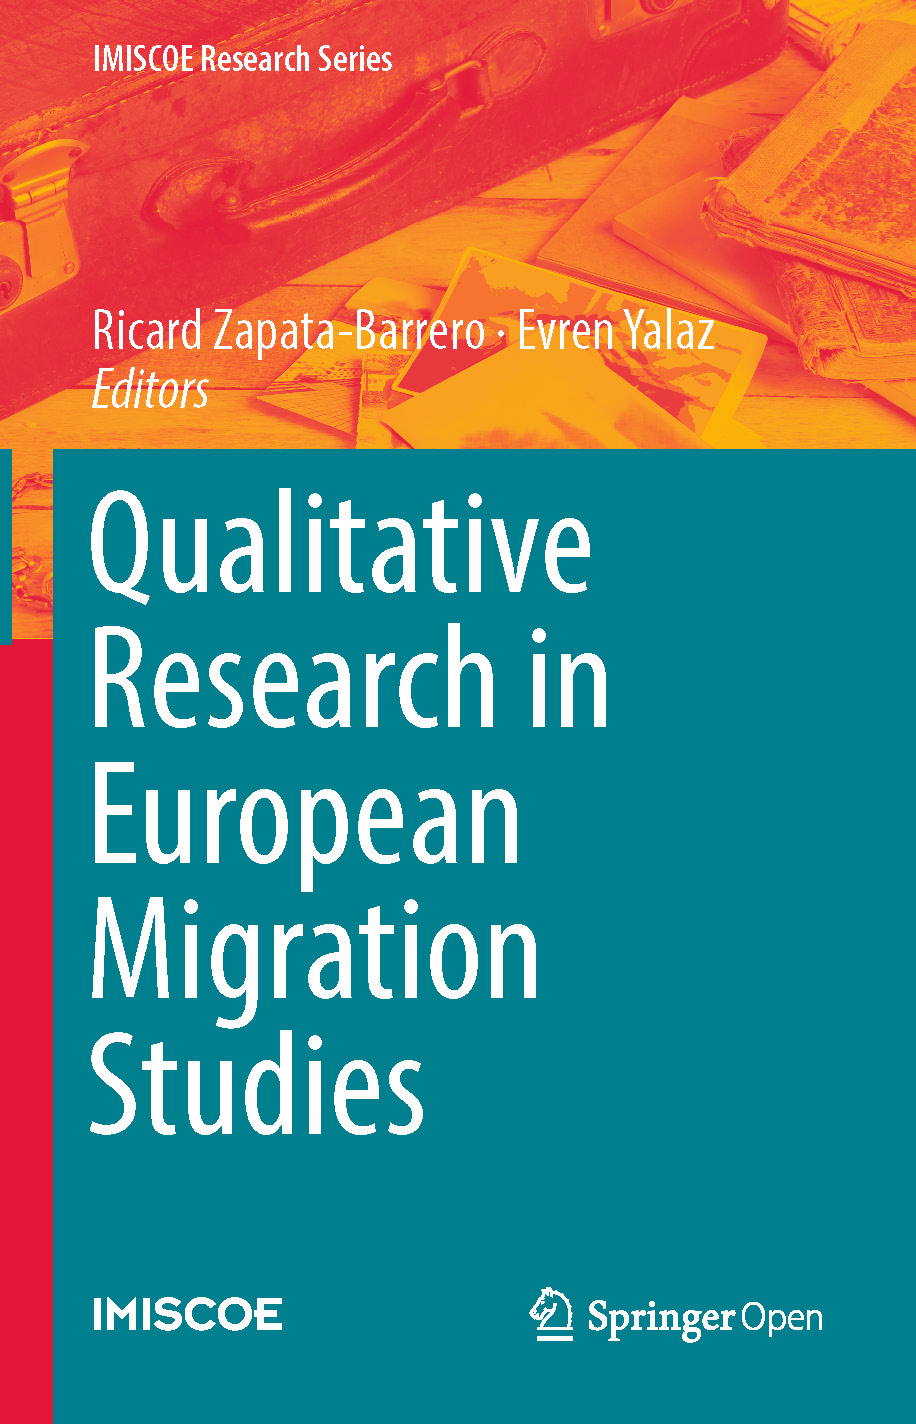 Cover of Qualitative Research in European Migration Studies